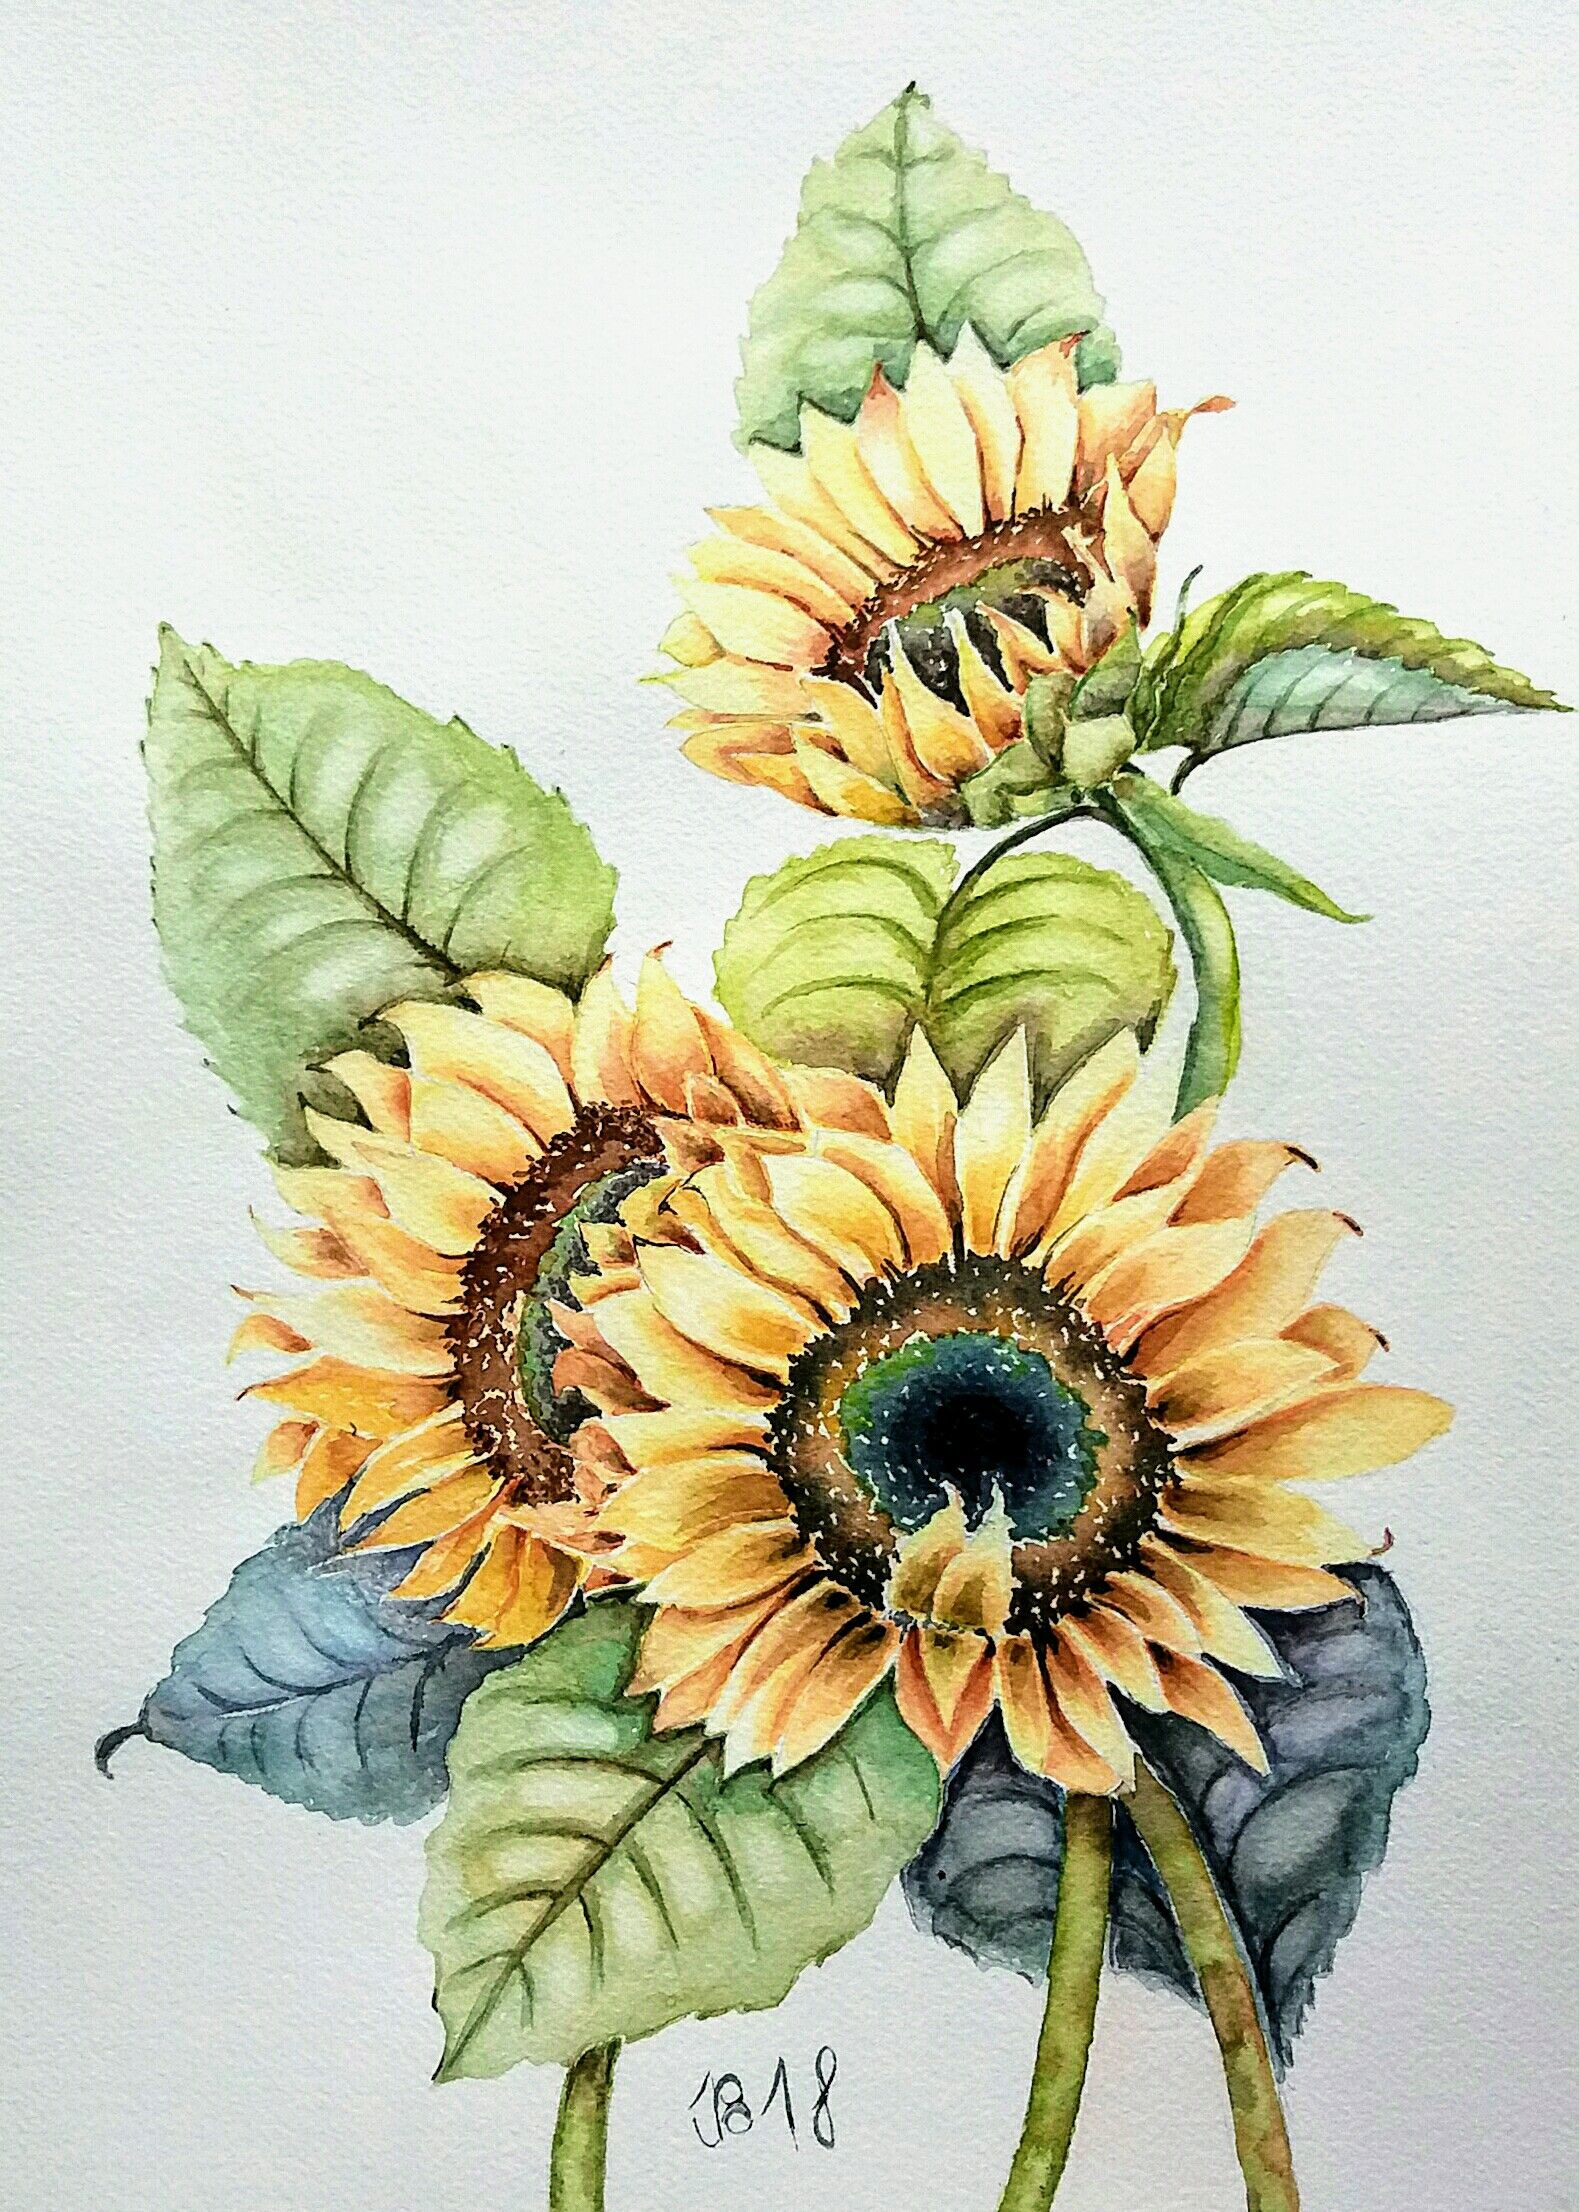 Aquarell Sonnenblumen Watercolor Sunflowers Aquarell